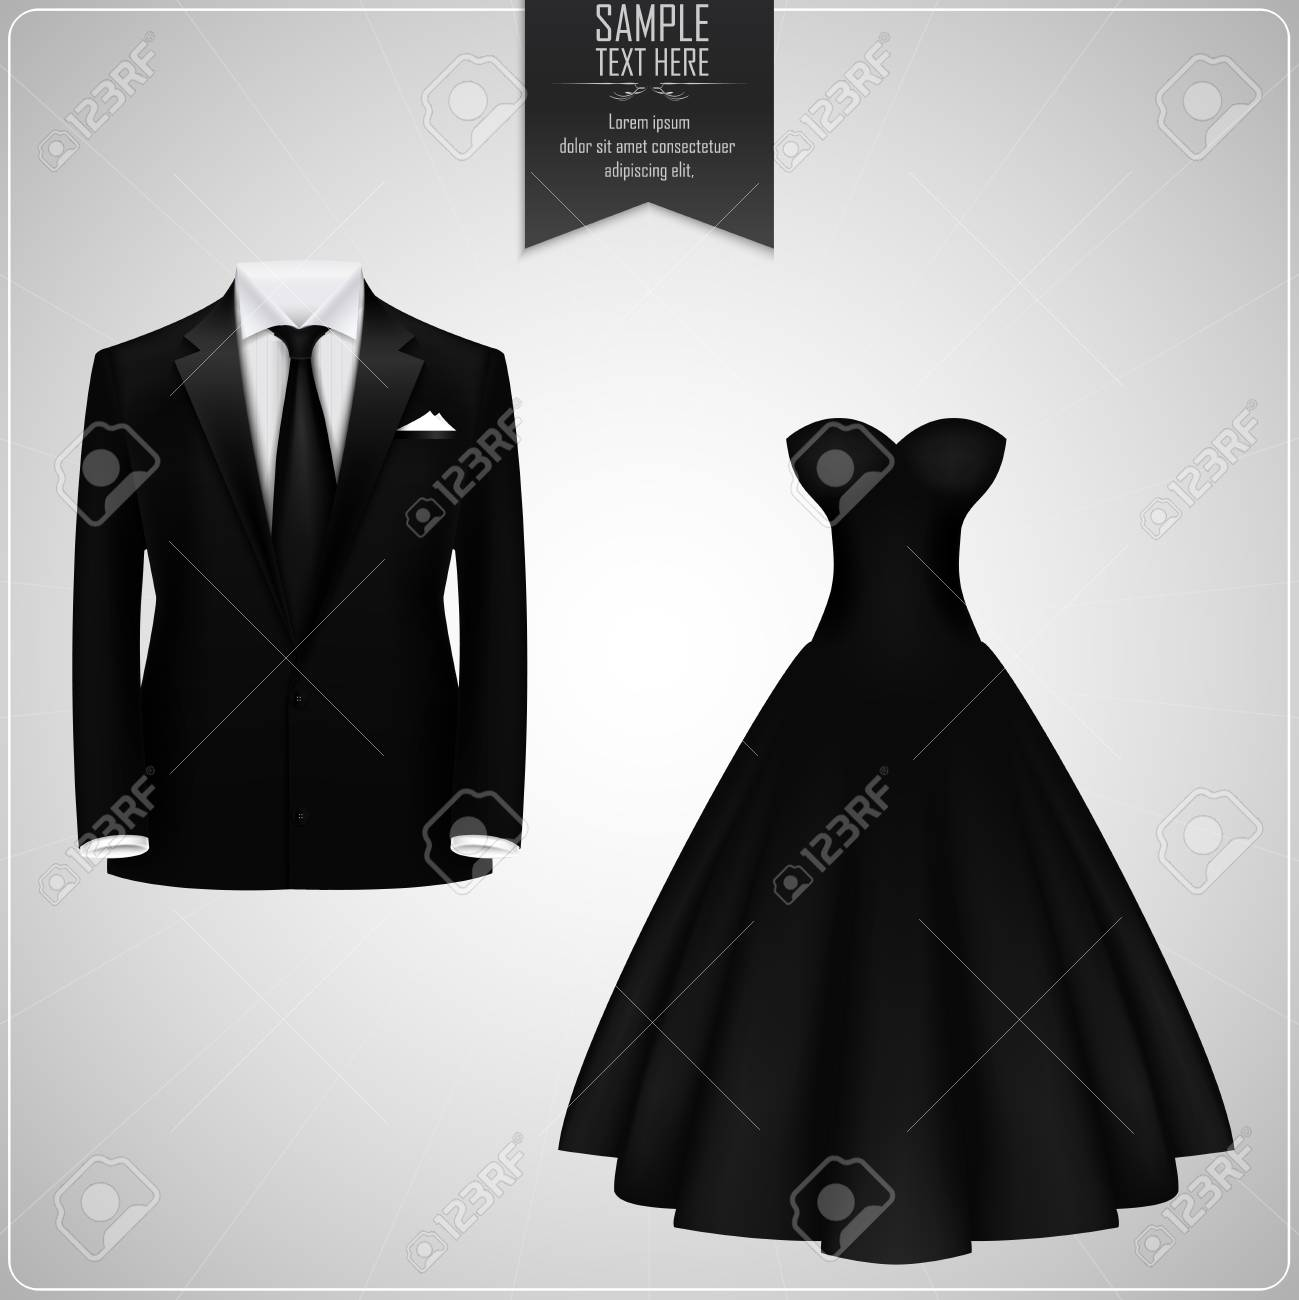 Black Groom Suit And Black Bridal Gown Stock Photo, Picture And ...